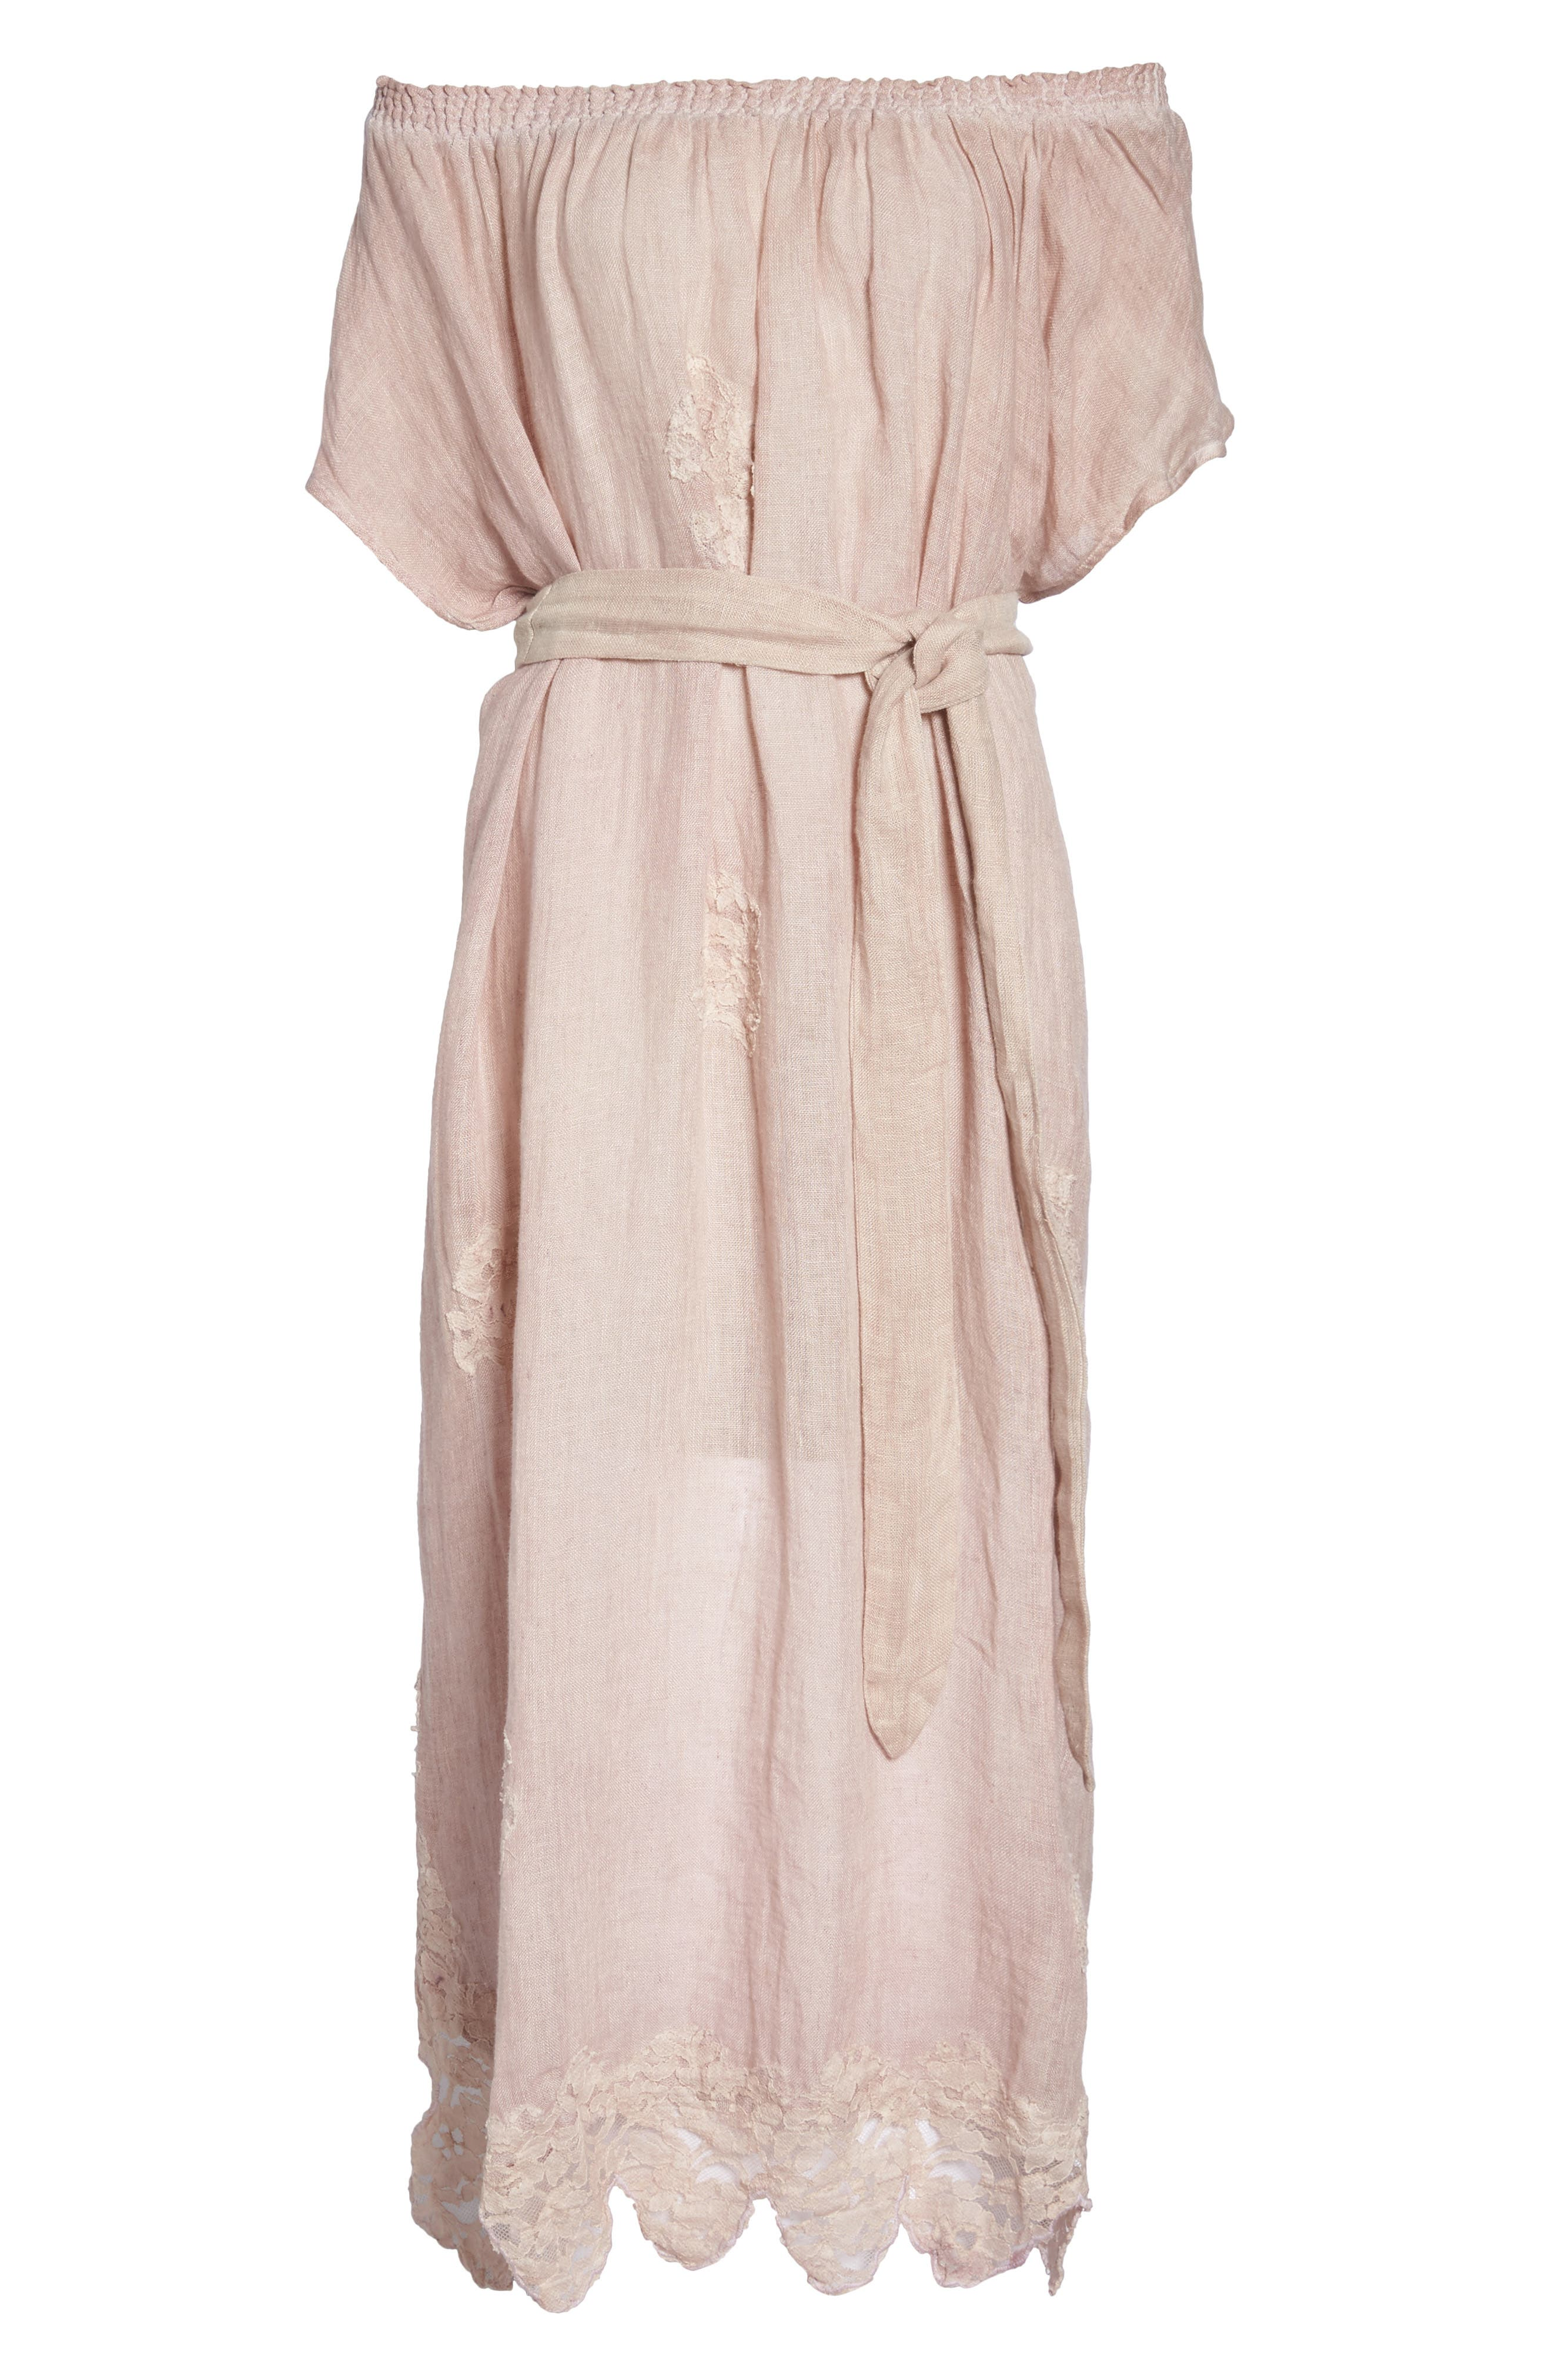 Daisy Linen Cover-Up Dress,                             Alternate thumbnail 6, color,                             Dusty Pink